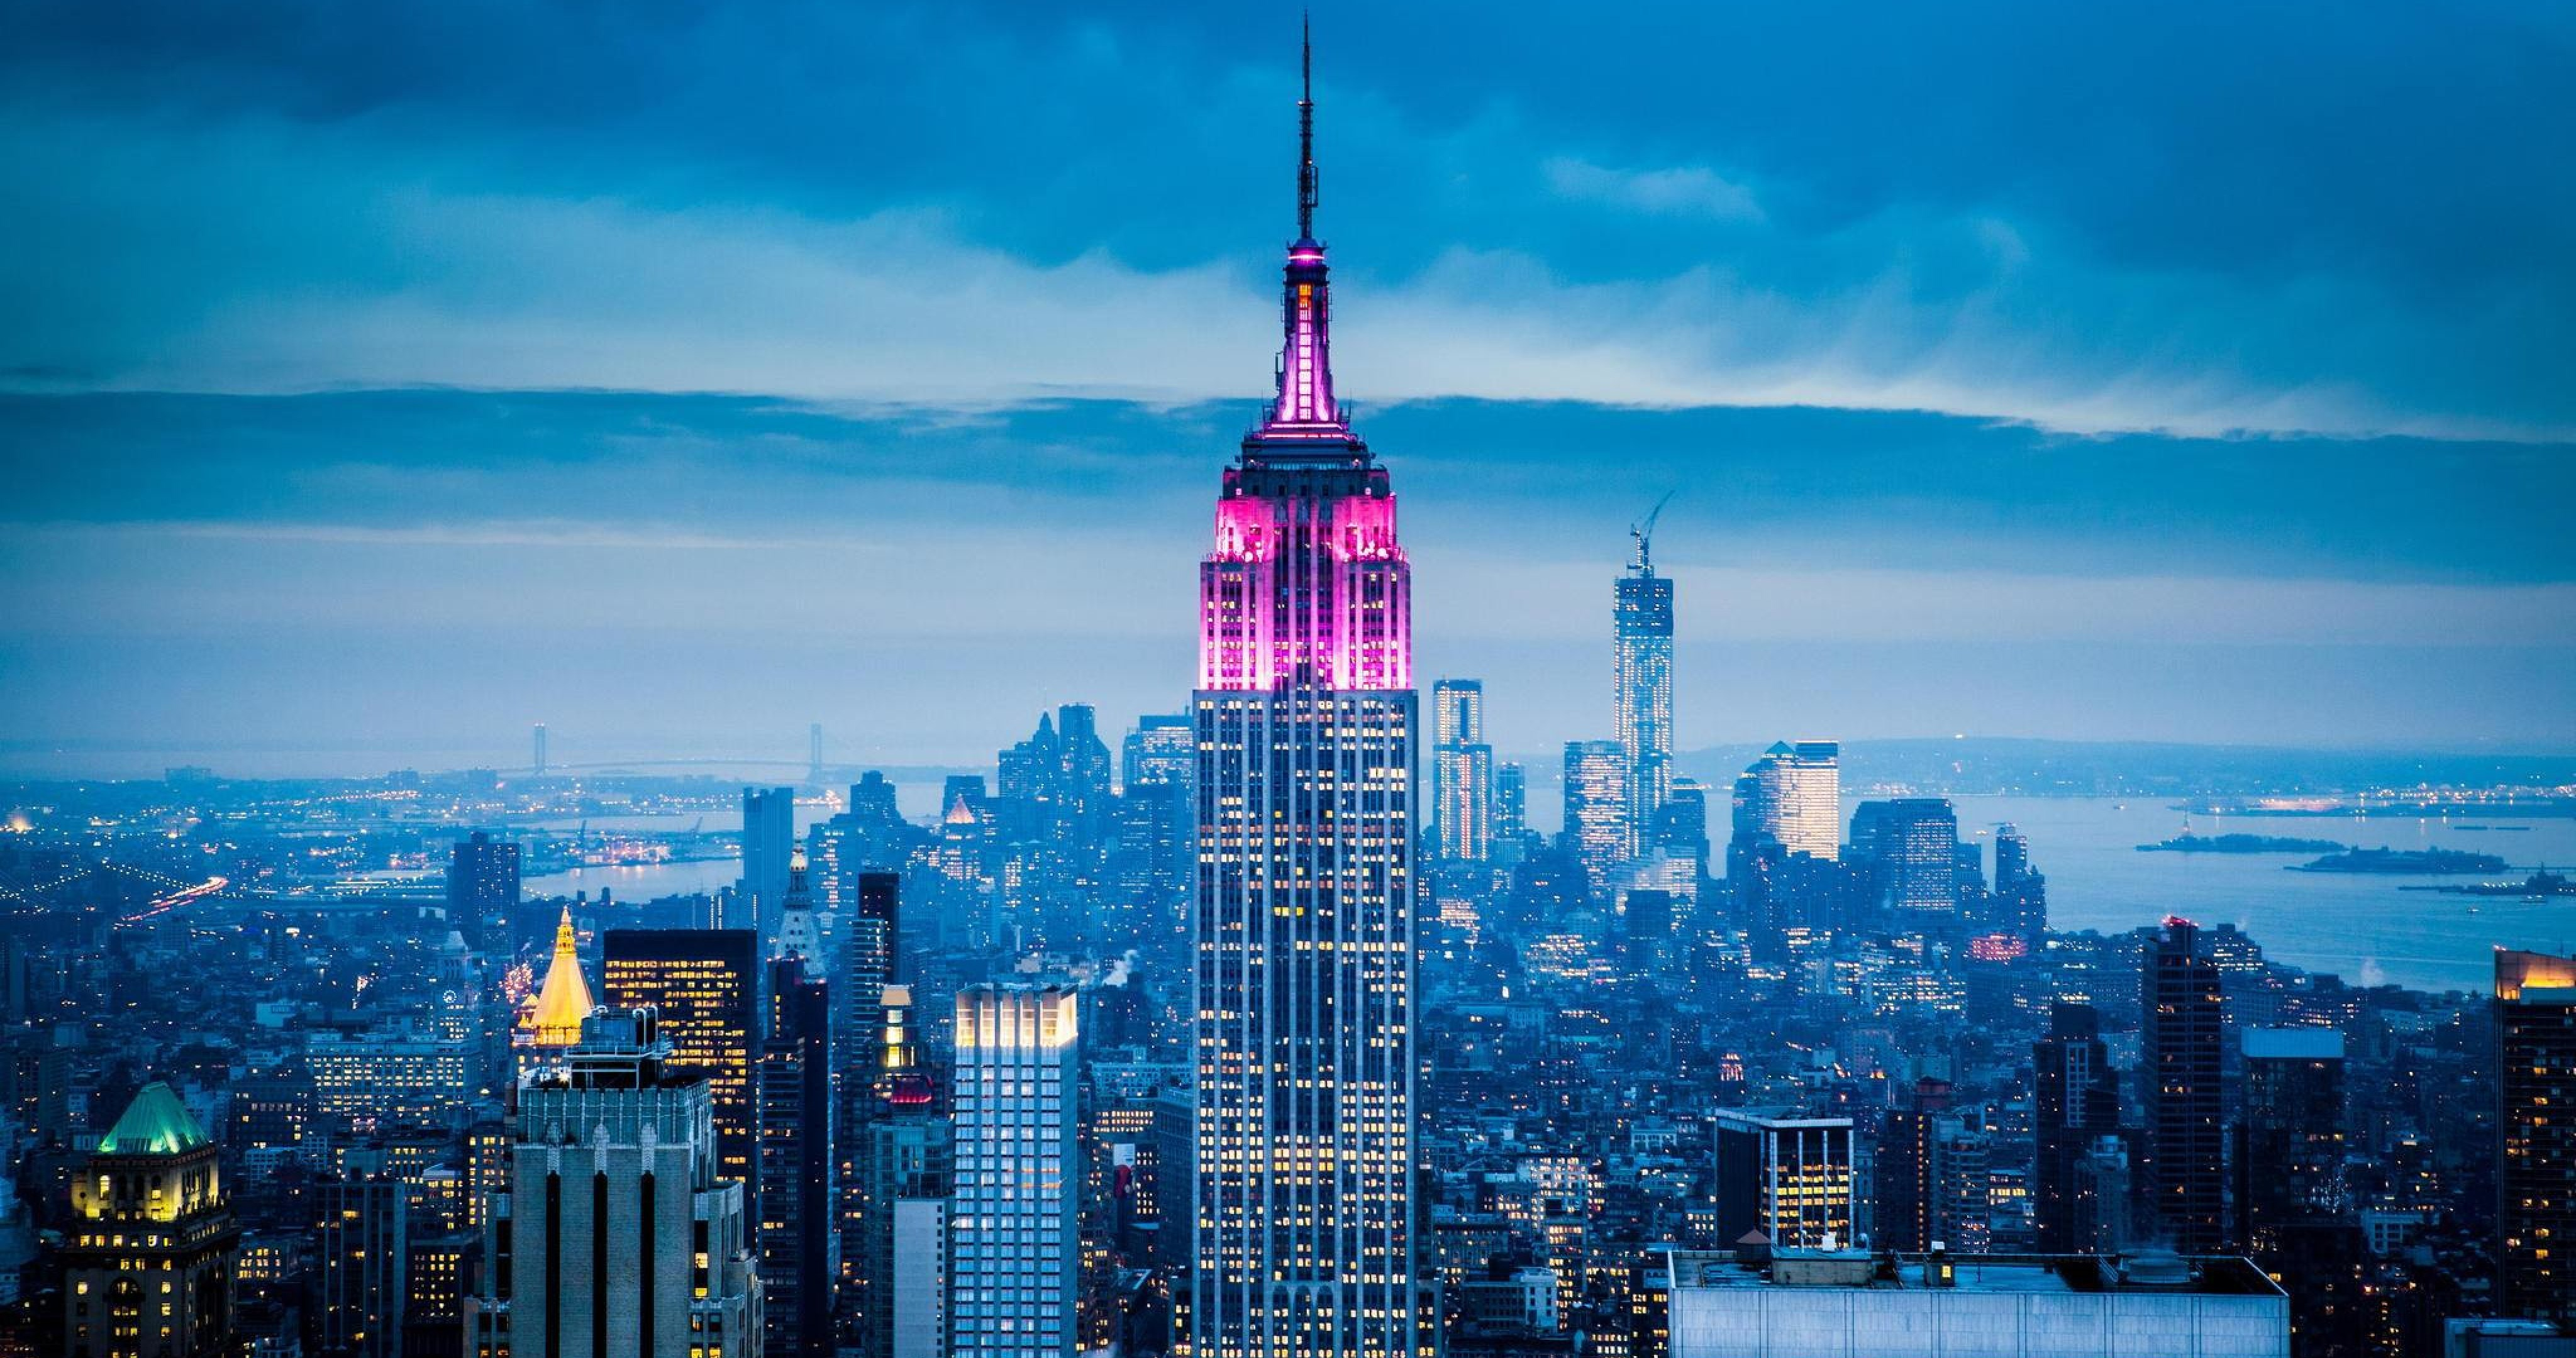 Empire State Building New York City 4k Ultra Hd Wallpaper